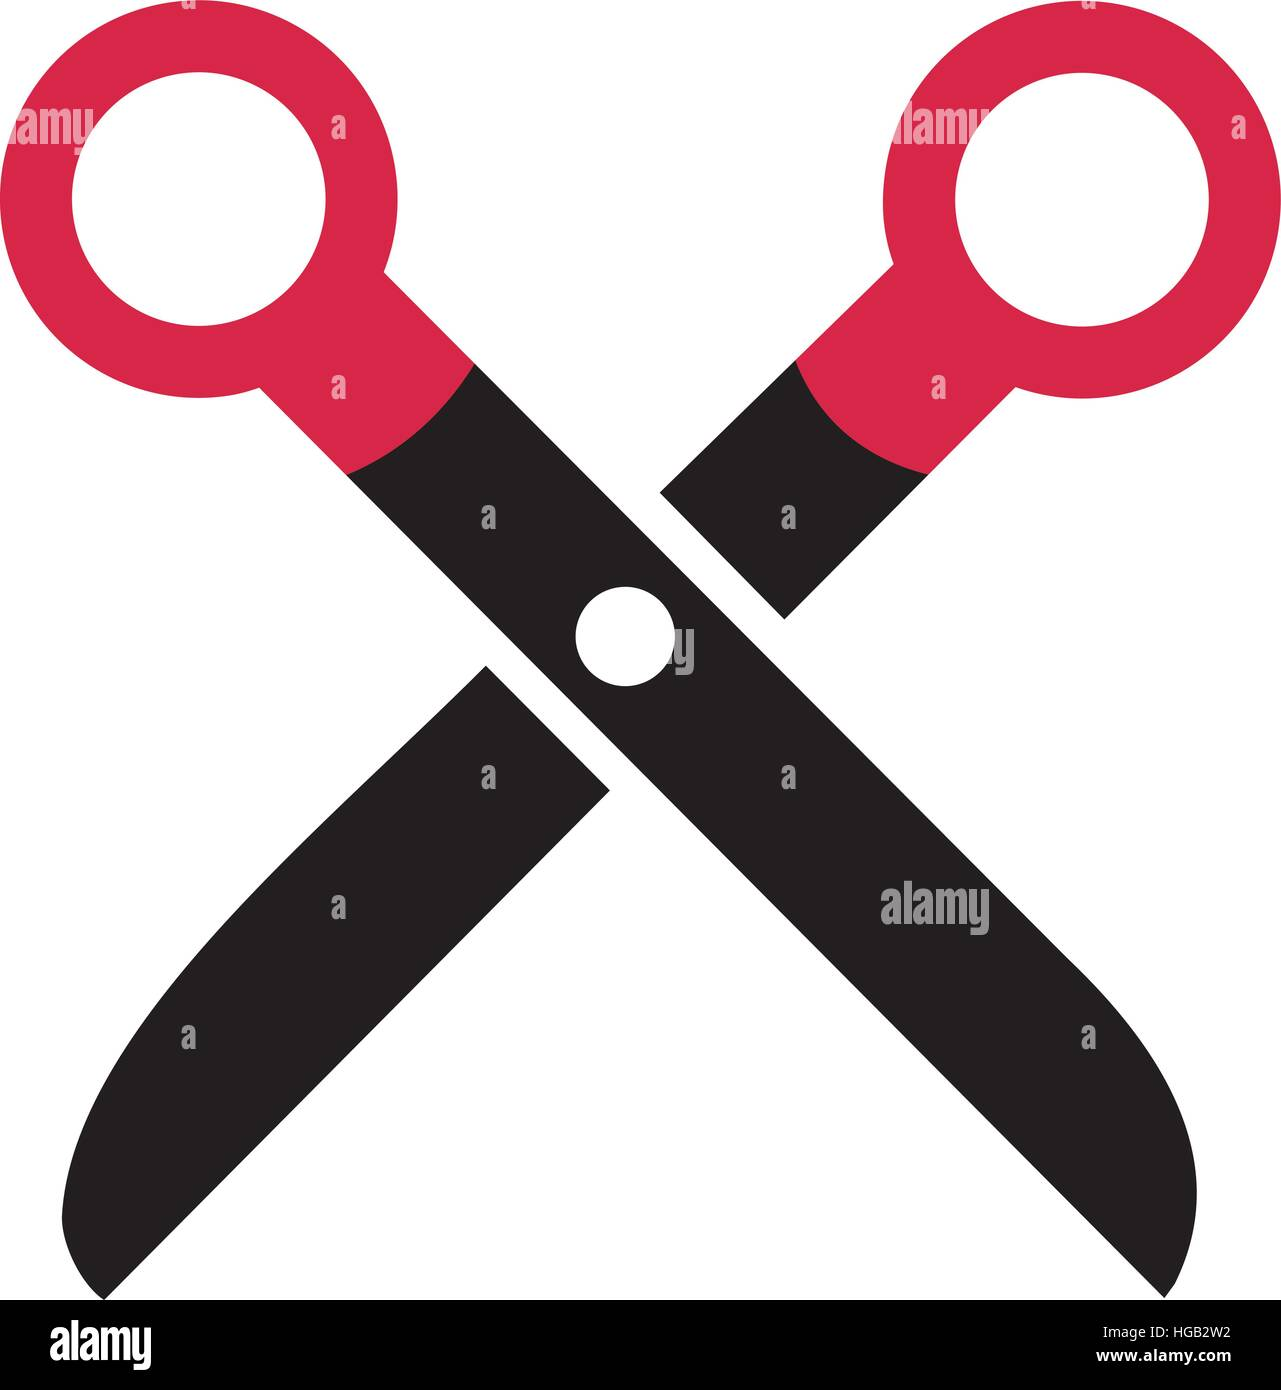 Simple scissor symbol stock vector art illustration vector simple scissor symbol biocorpaavc